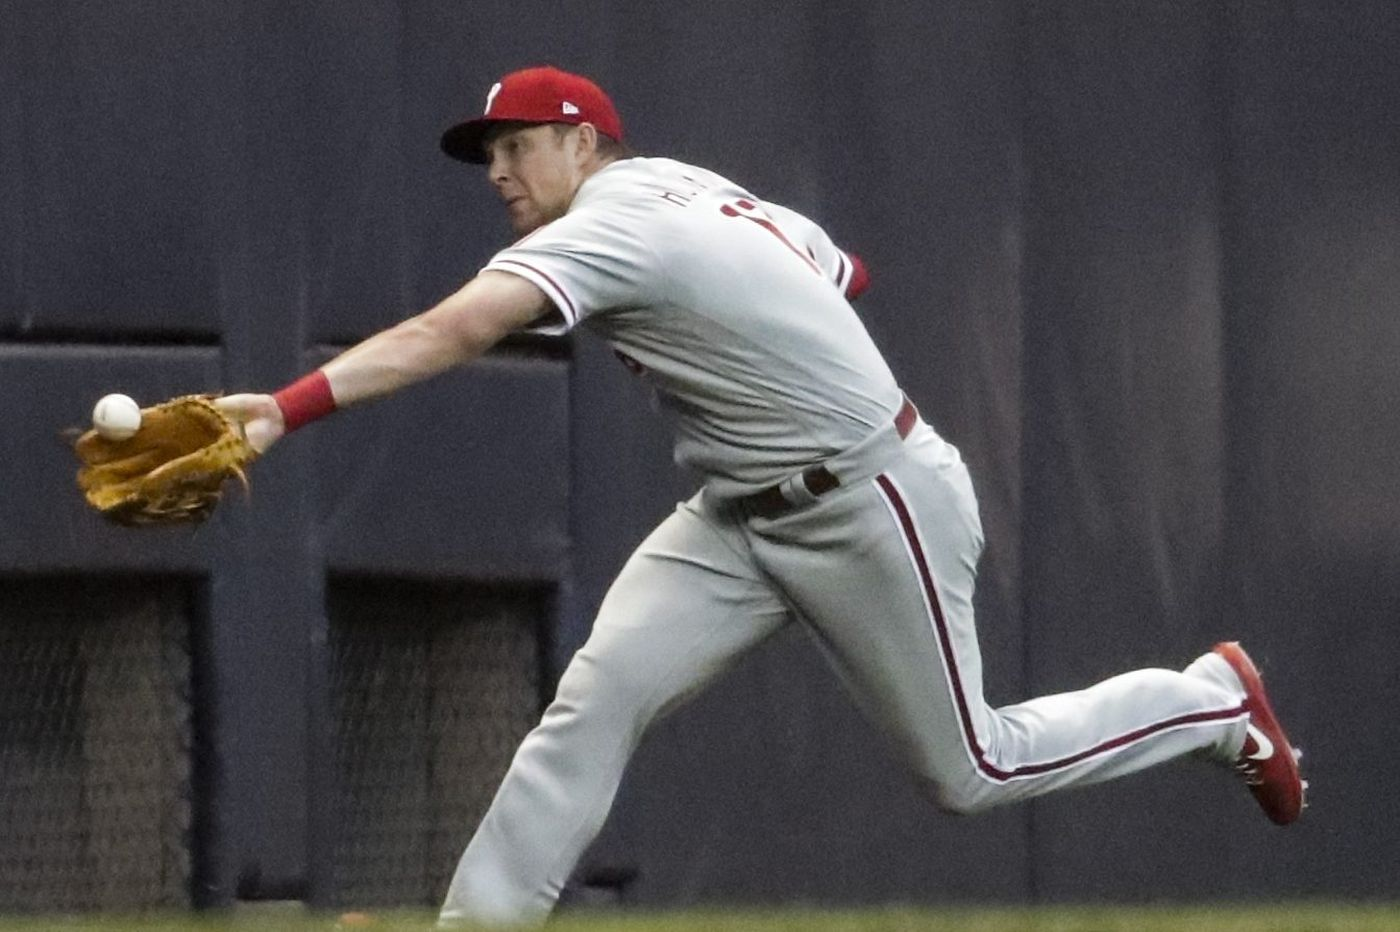 Phillies defense fails Jake Arrieta in blowout loss to Brewers